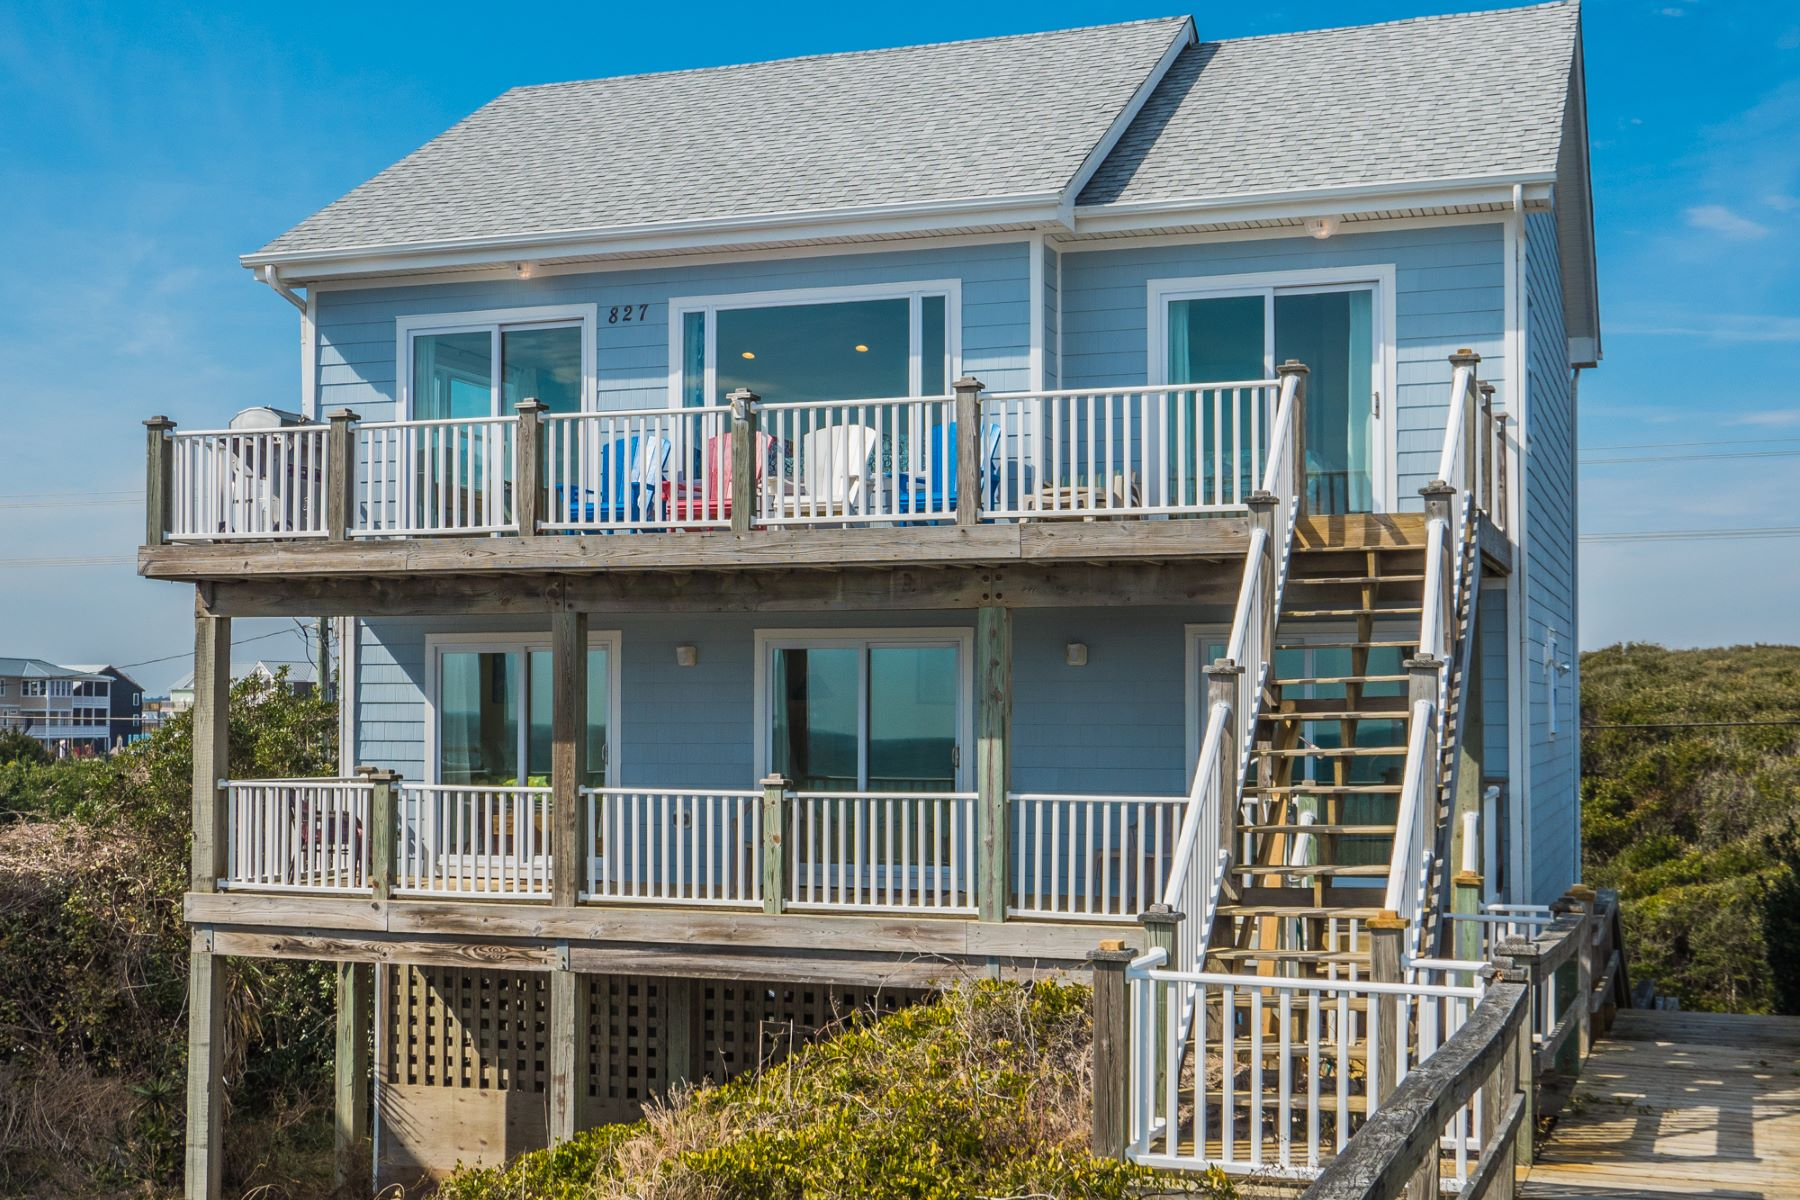 Single Family Home for Sale at Ocean Front Haven with Panoramic Views 827 N Anderson Blvd Topsail Beach, North Carolina 28445 United States